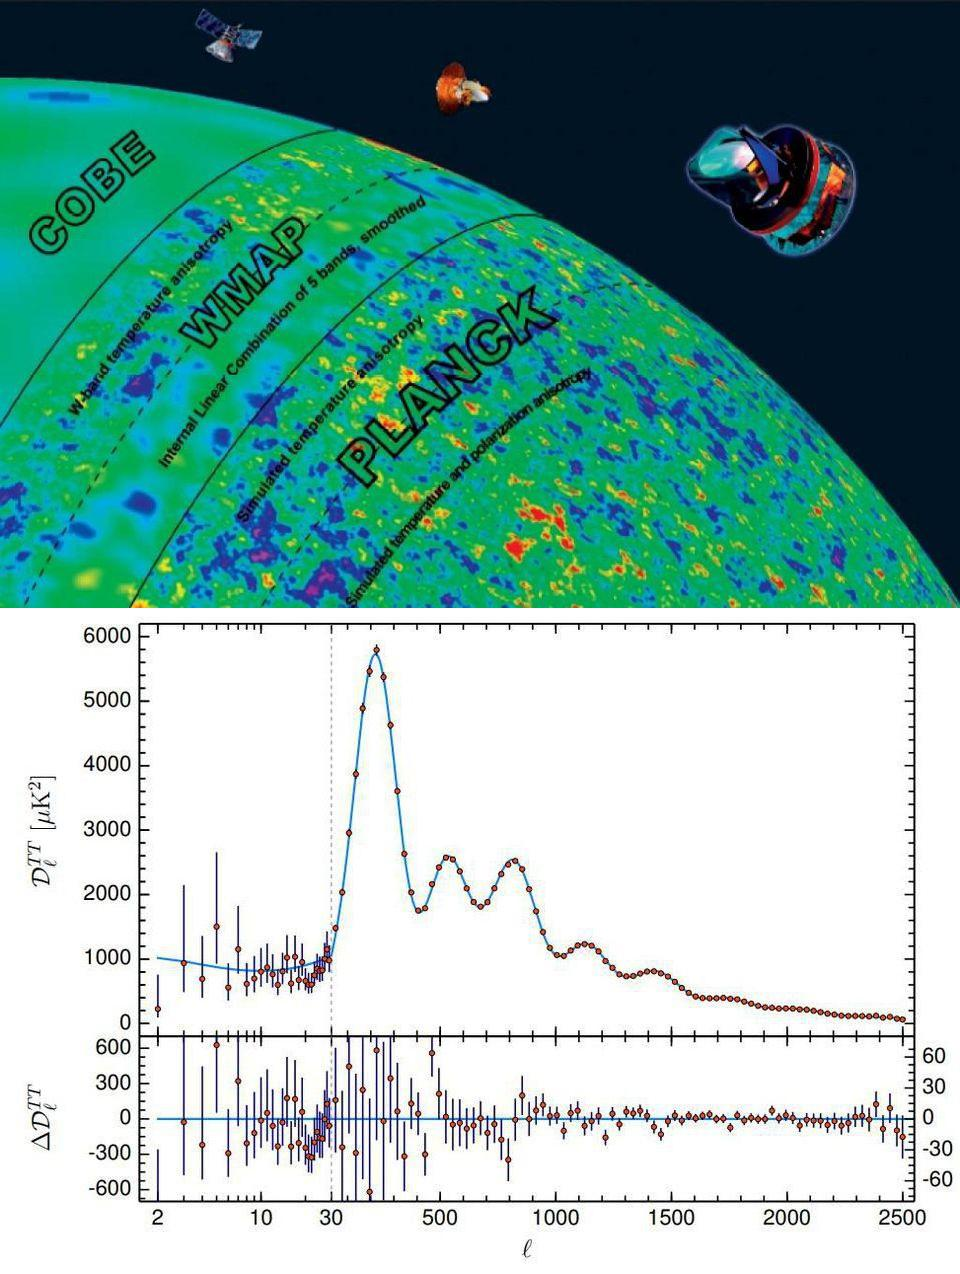 Top: COBE, WMAP, and Planck views of the CMB; Bottom: temperature fluctuations vs. scale.